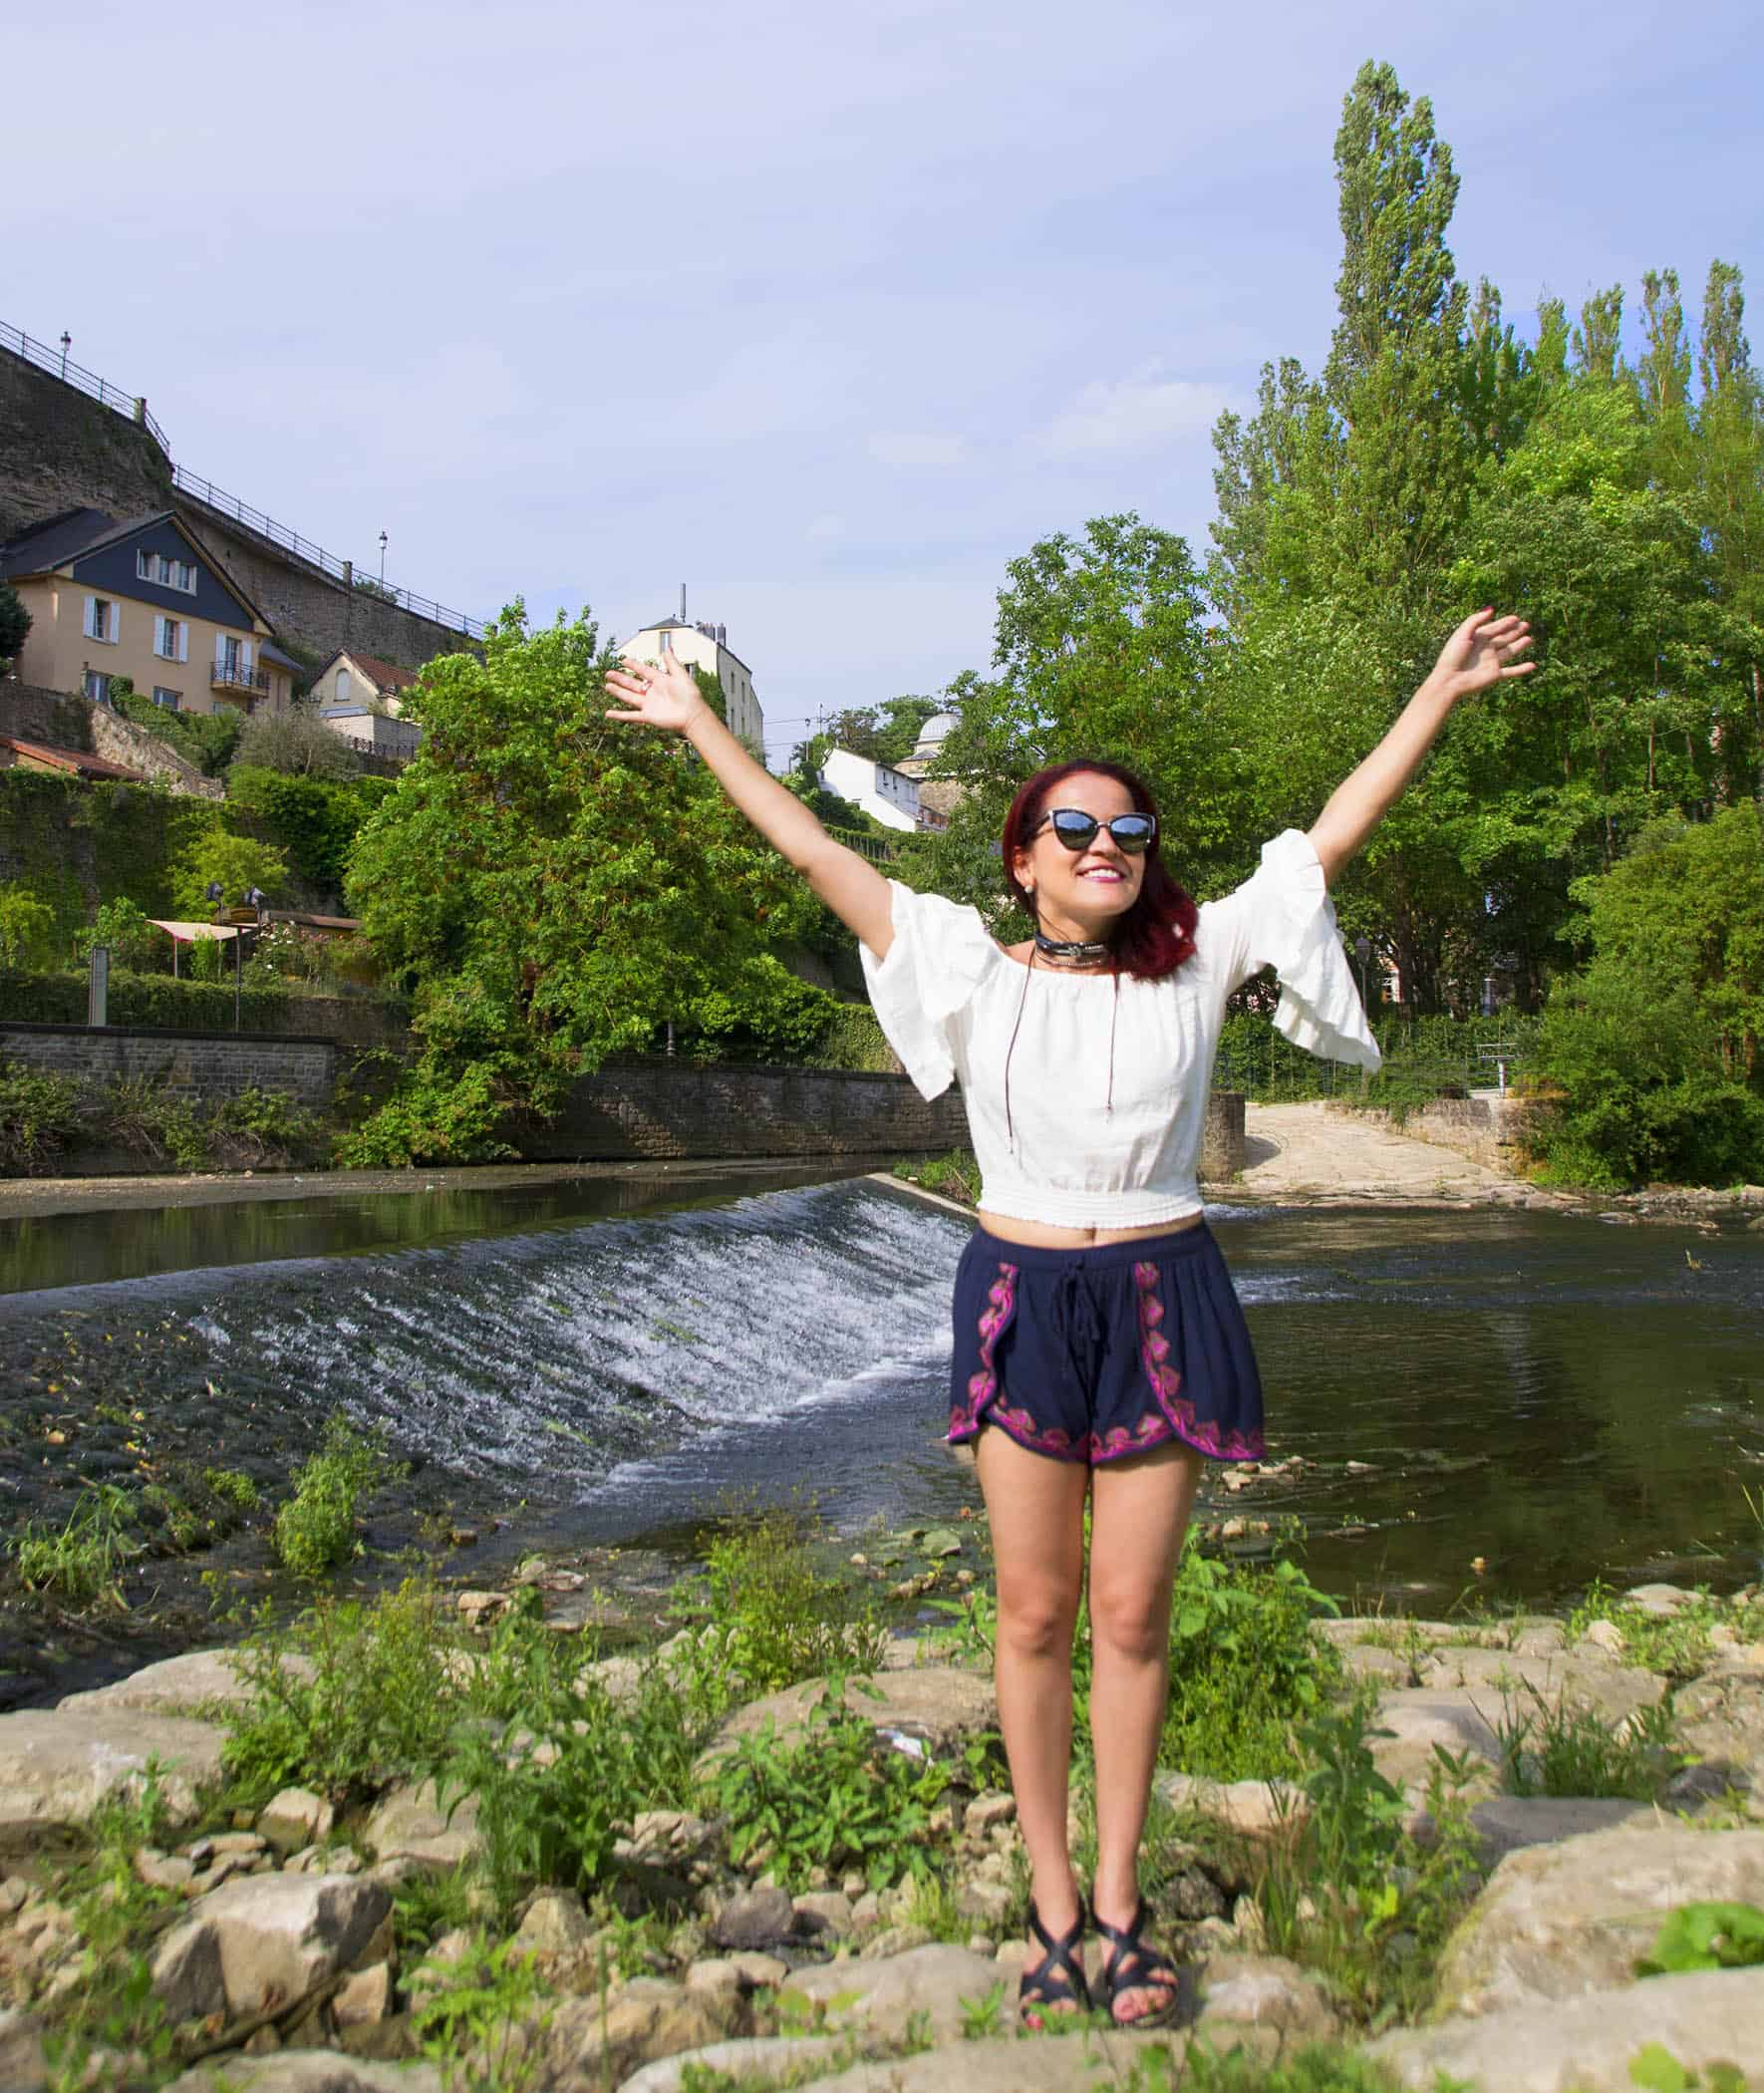 Luxembourg in europe is not to be missed top things to do in in luxembourg the highlights and of course travel tips things to do in luxembourg city in one day warning you may get inspired to plan to visit thecheapjerseys Images